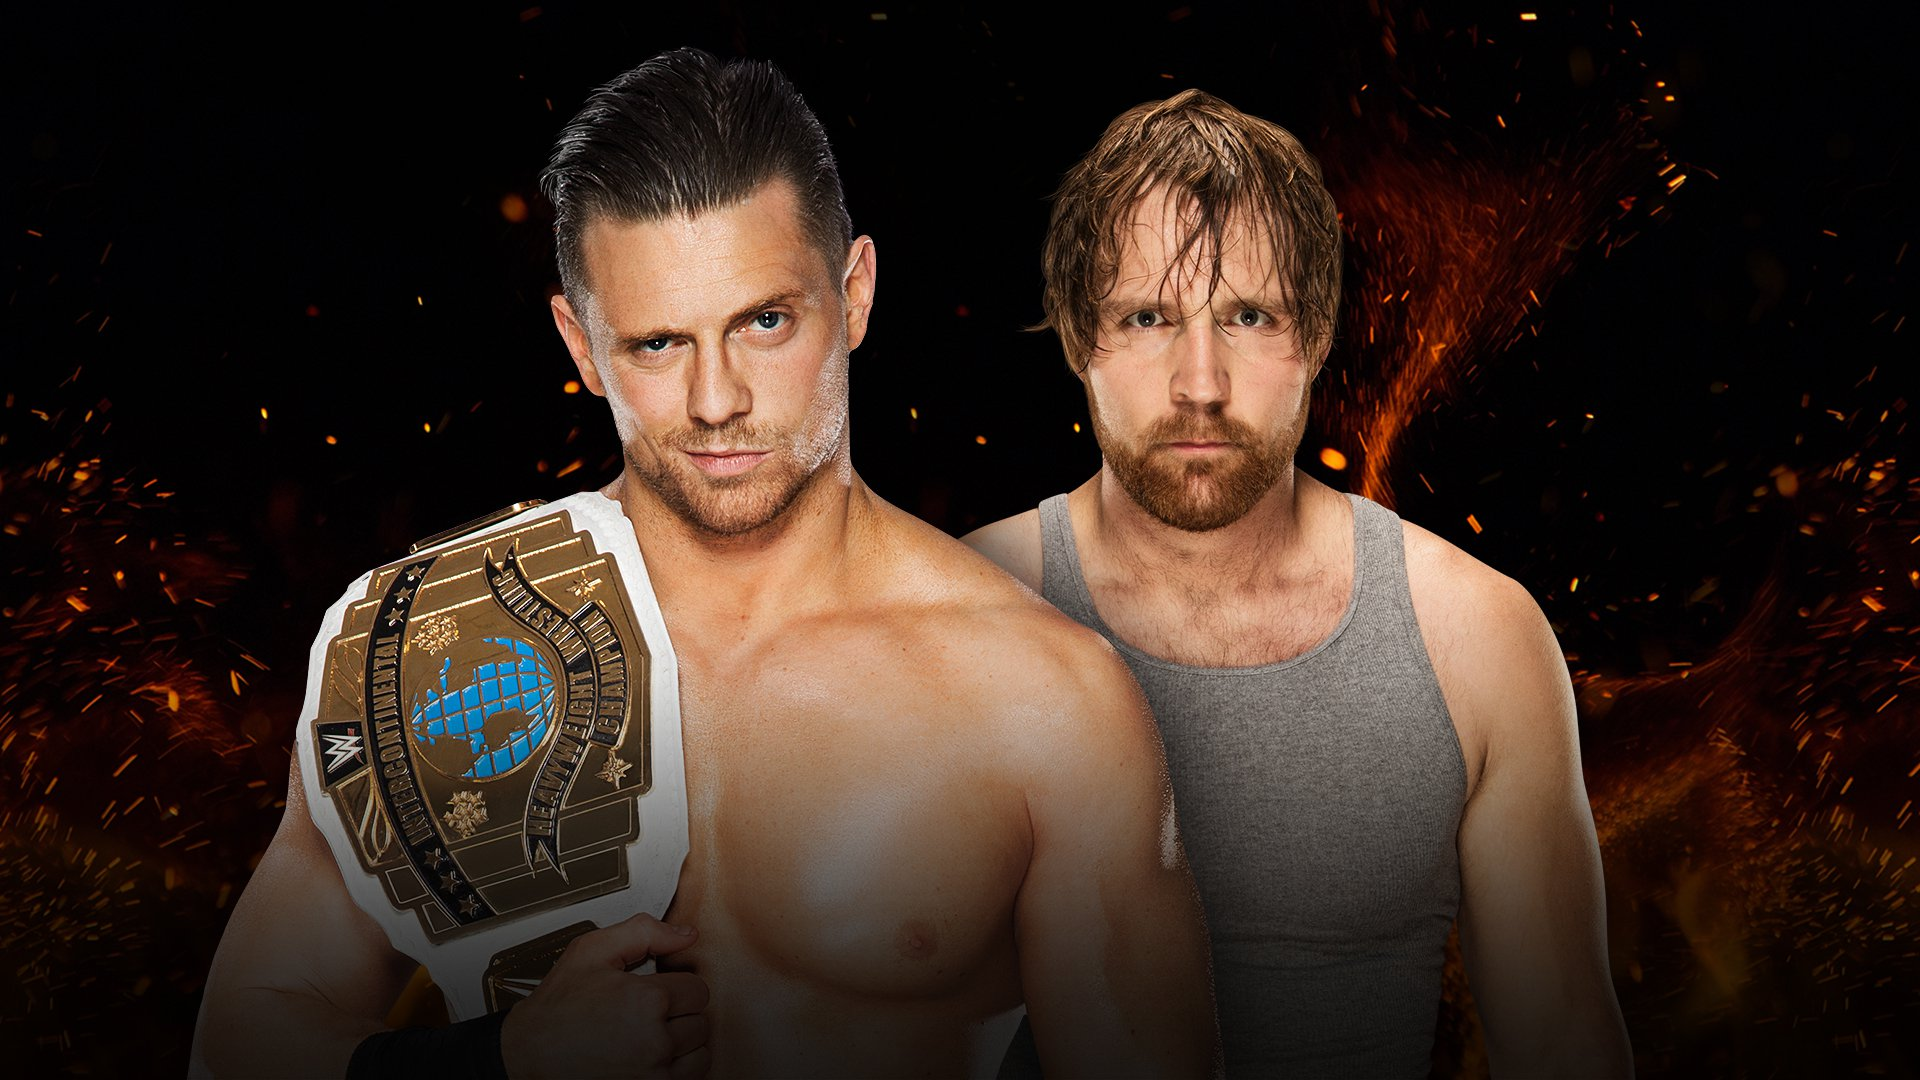 WWE Great Balls of Fire 2017: The Miz vs. Dean Ambrose